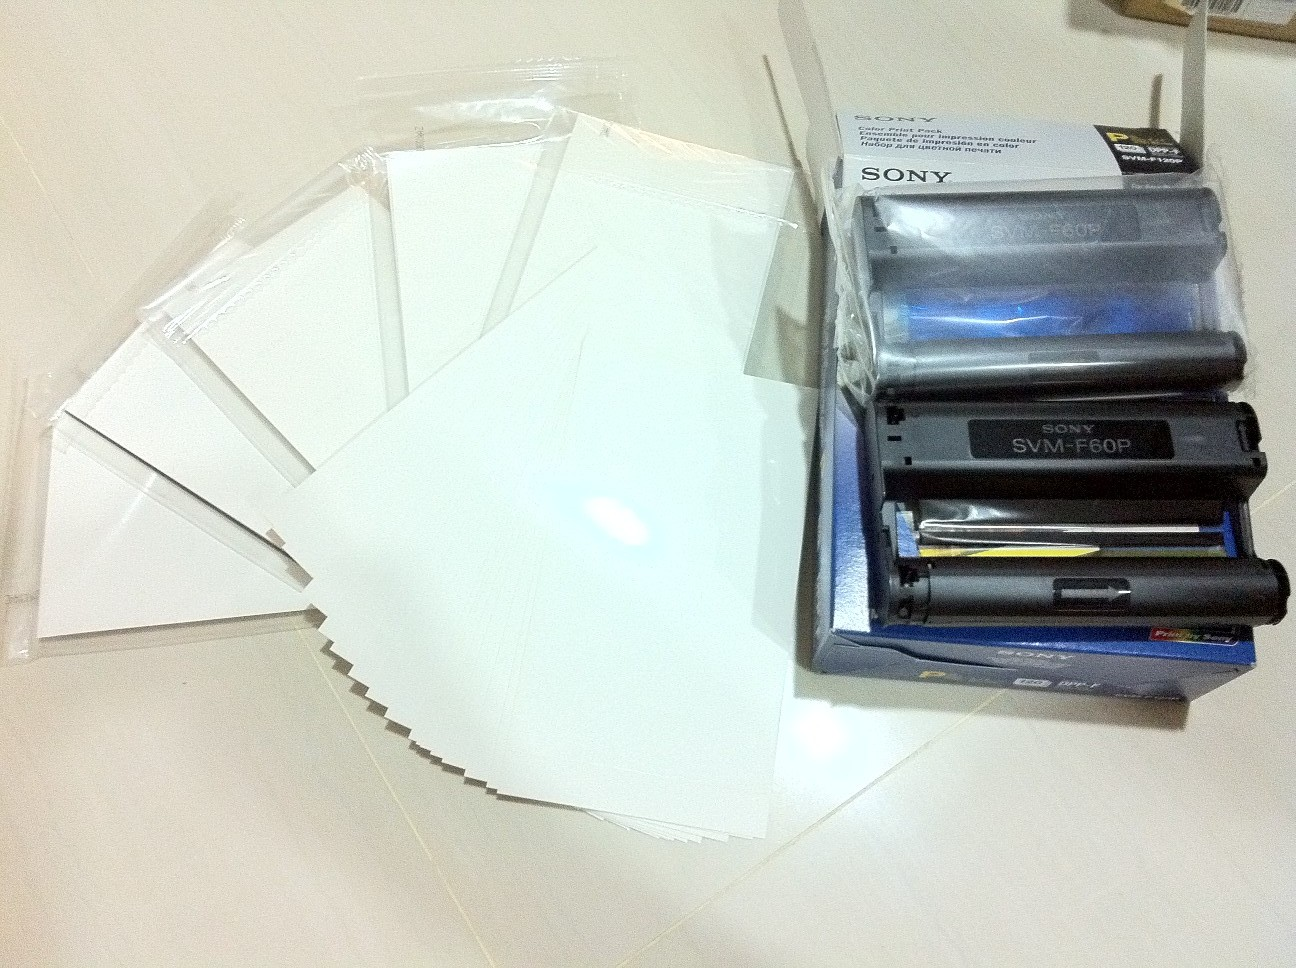 Wts Svm F120p Sony Print Paper And Cartridge For Dpp Fp